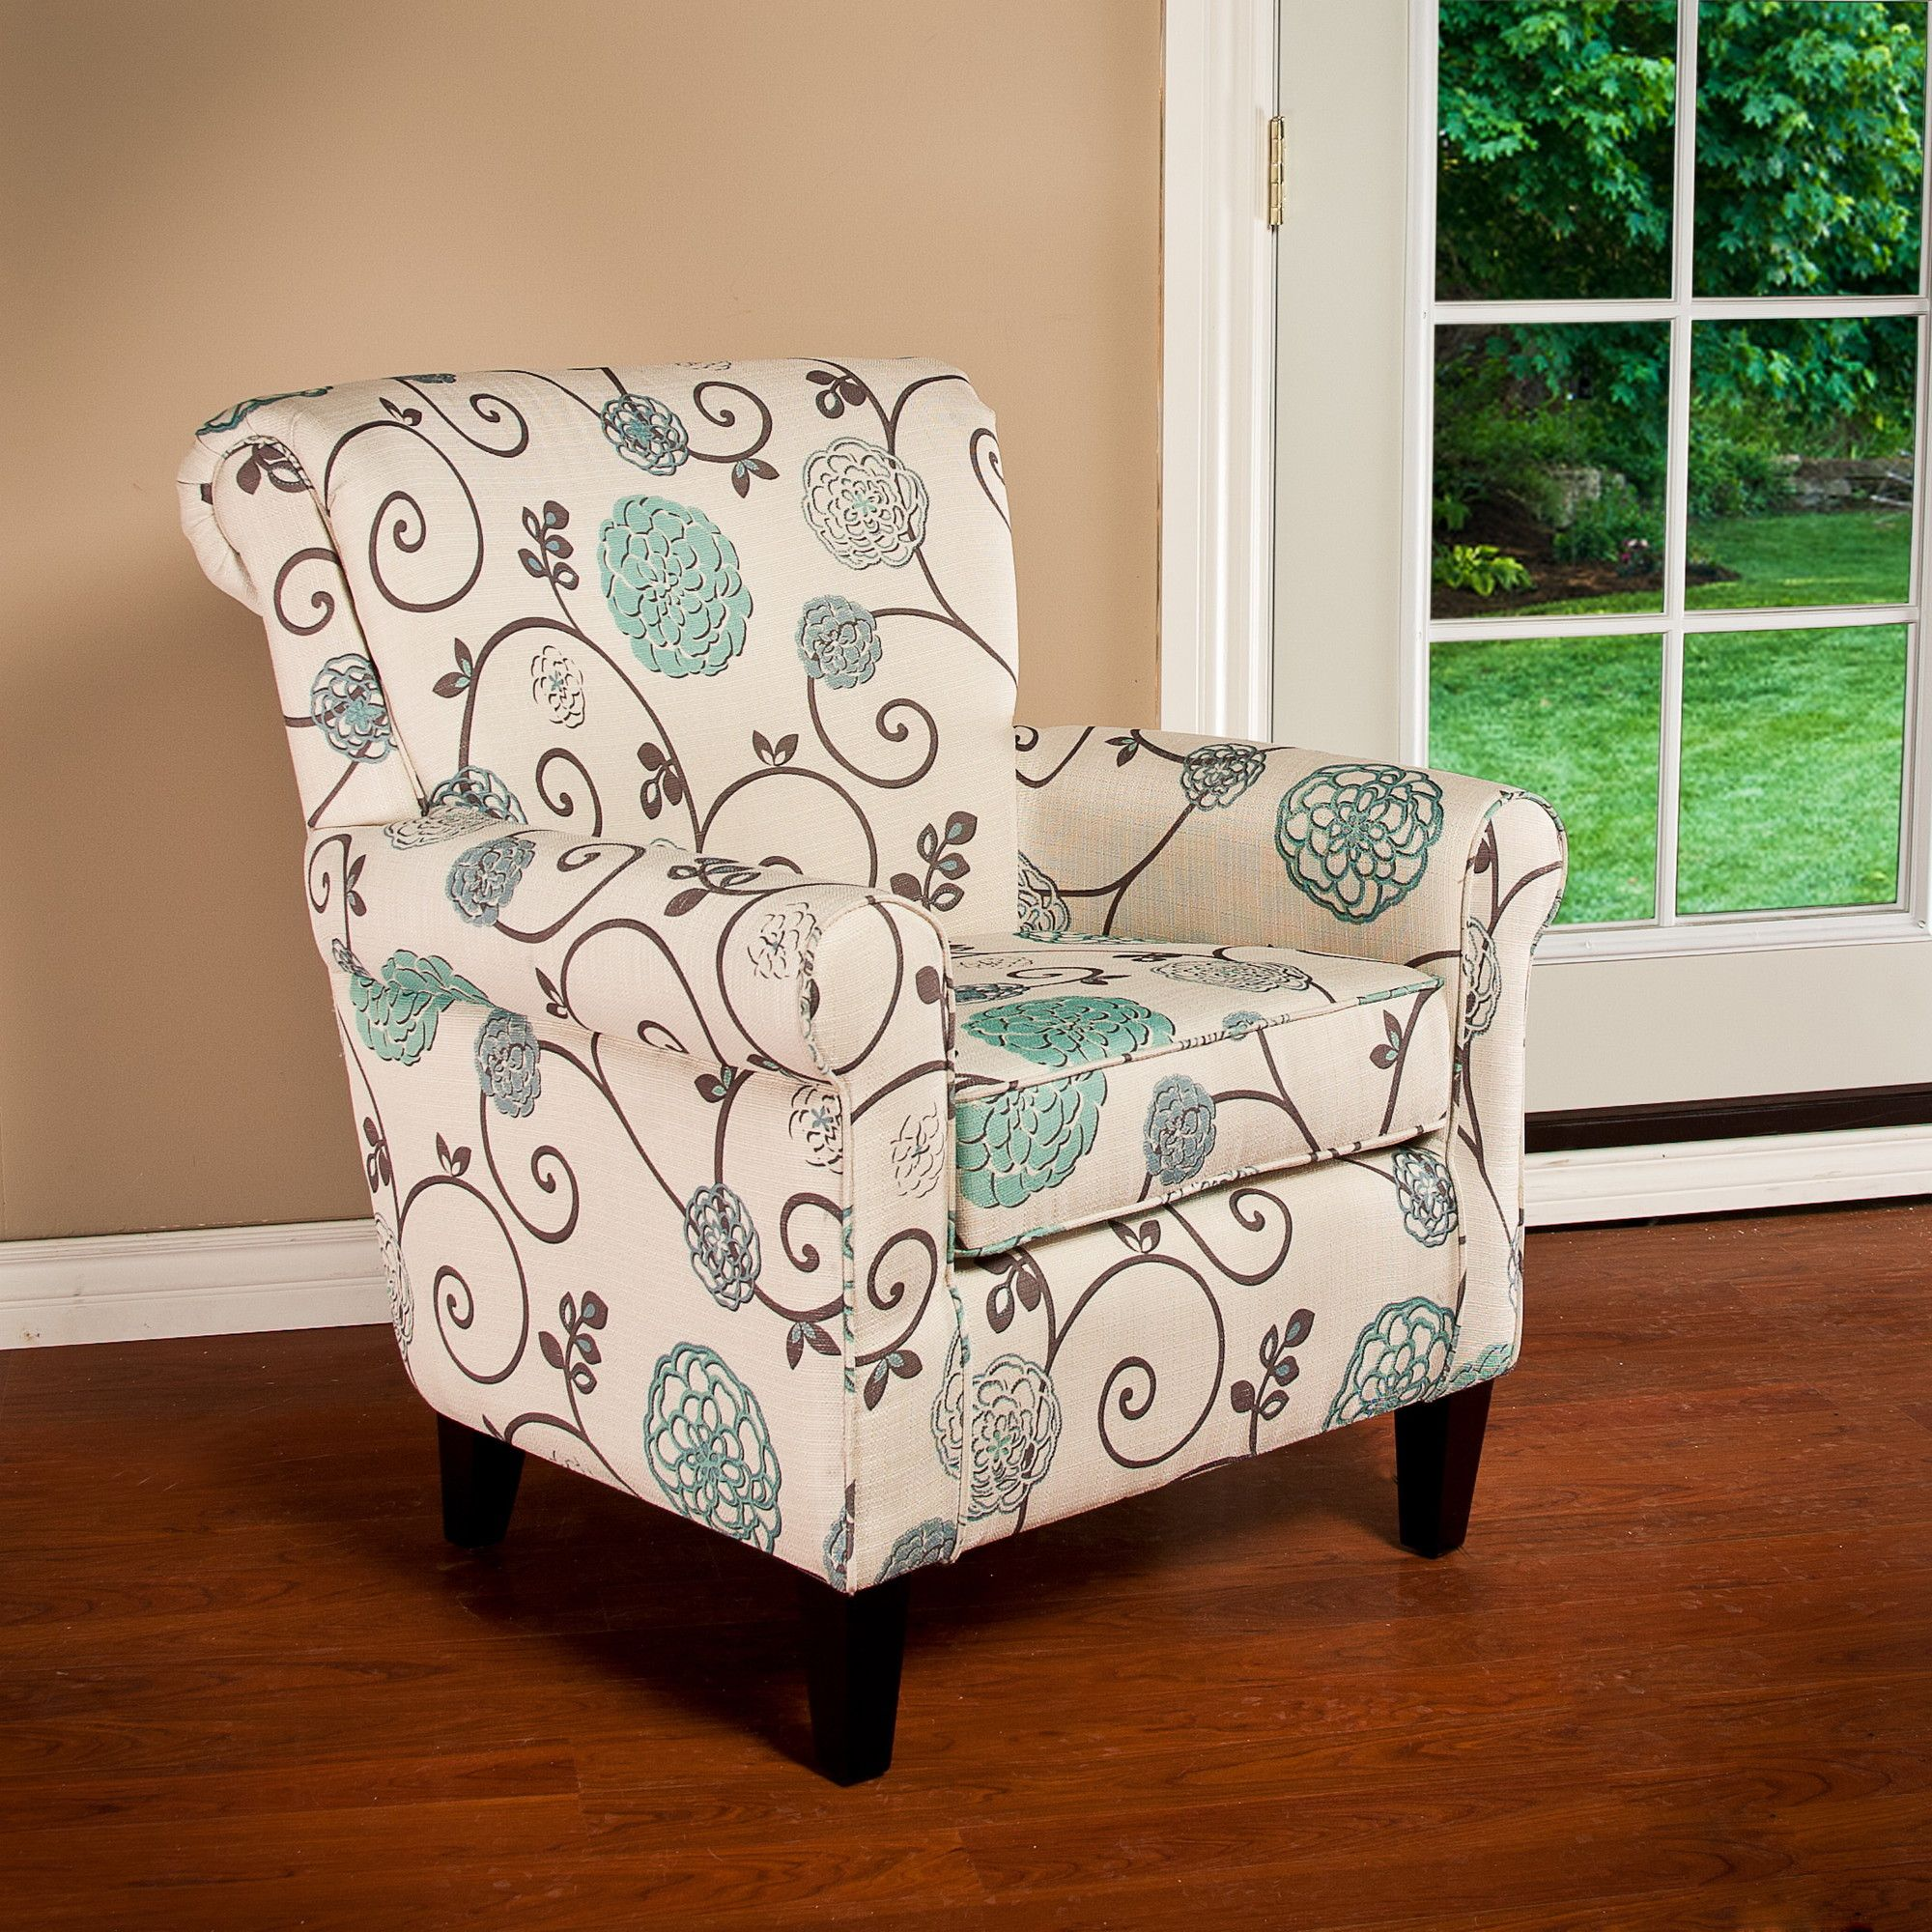 Explore Club Chairs, Arm Chairs, And More!